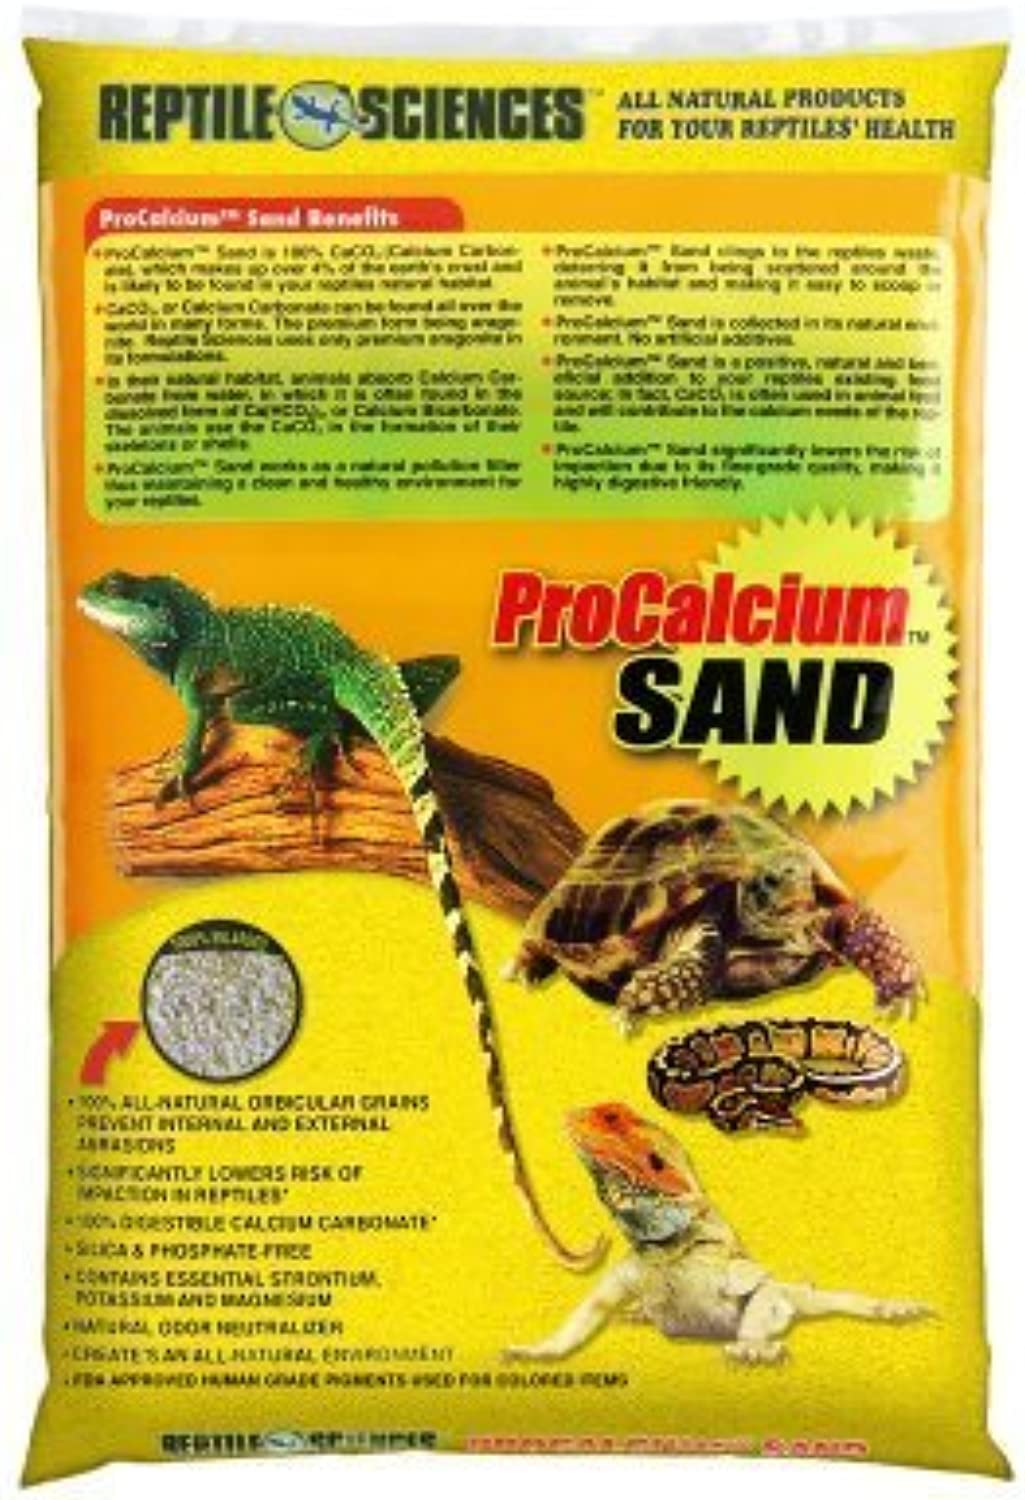 Reptile Sciences Terrarium Sand, 10Pound, Bright Yellow by WORLD WIDE IMPORTS ENT., INC.